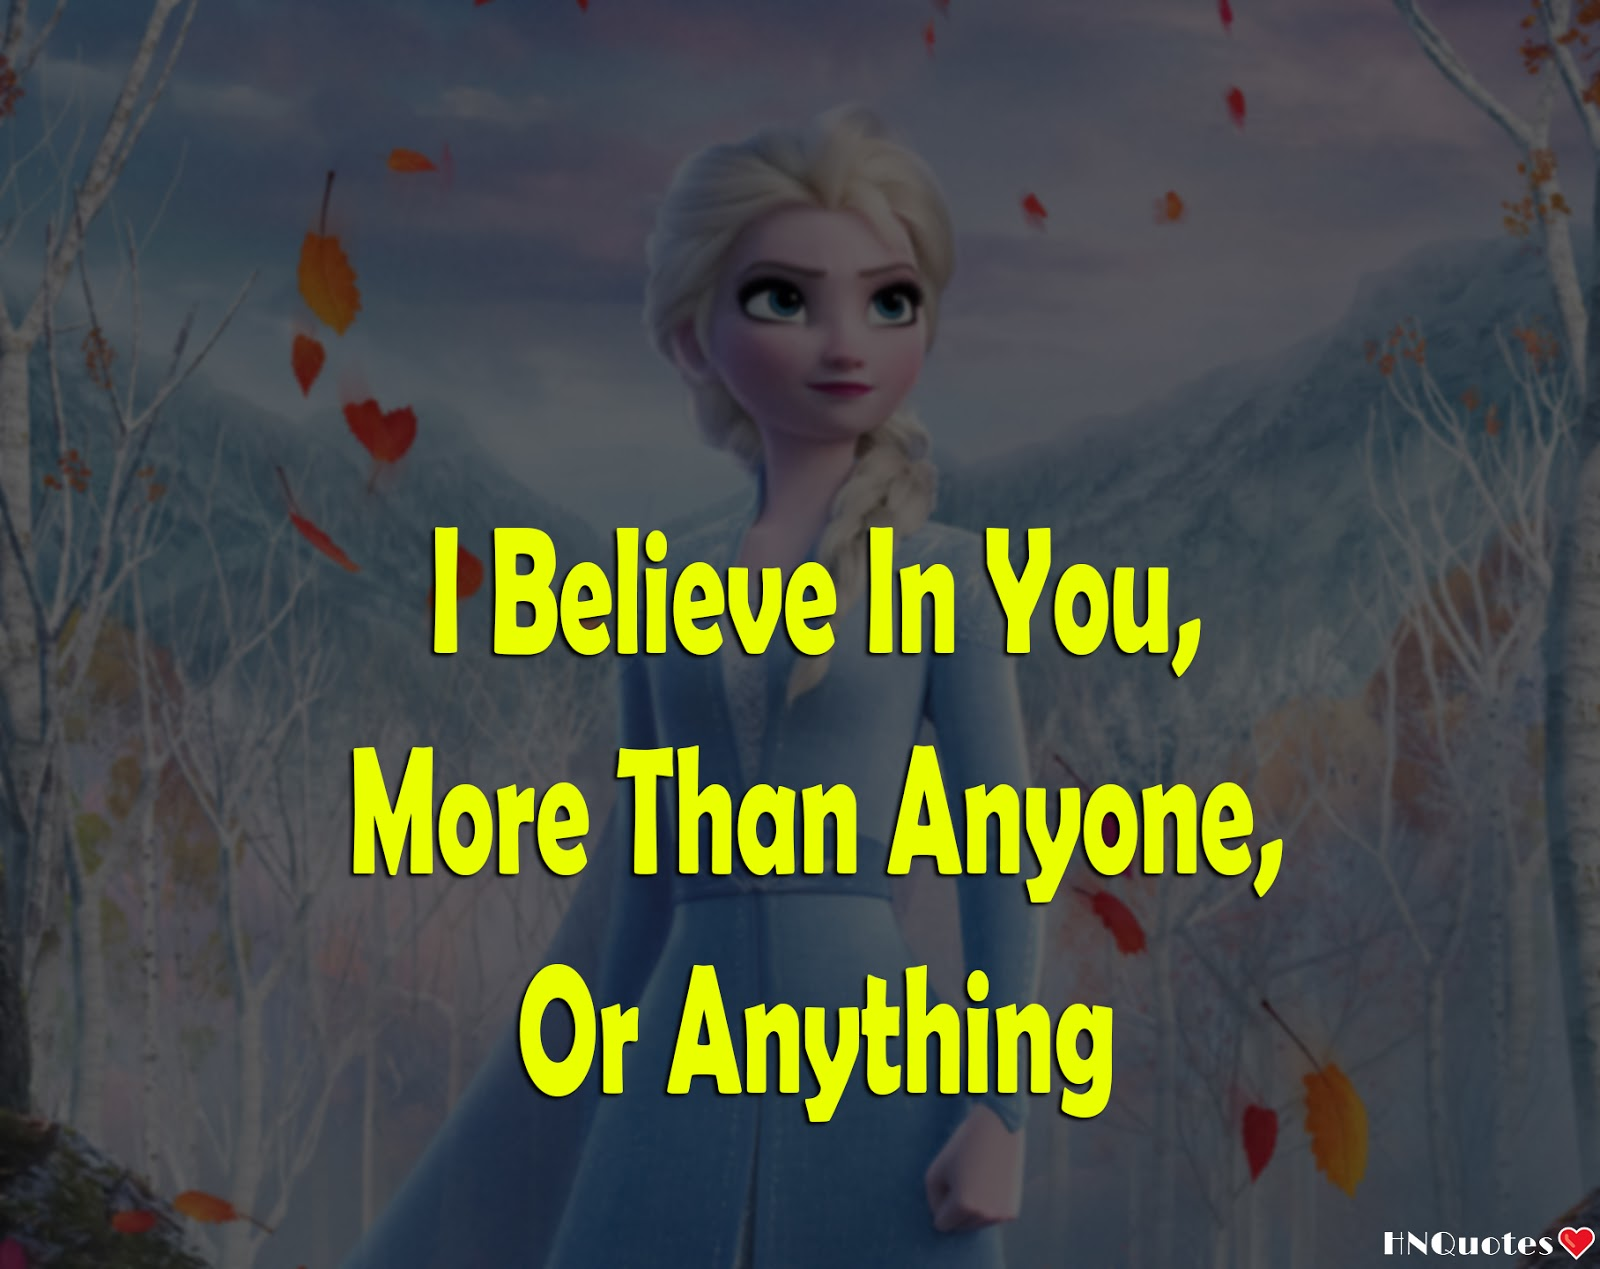 Frozen-2-Movie-Disney-Best-Quotes-Funny-Motivational-Love-Beautiful-Lines-8-[HNQuotes]